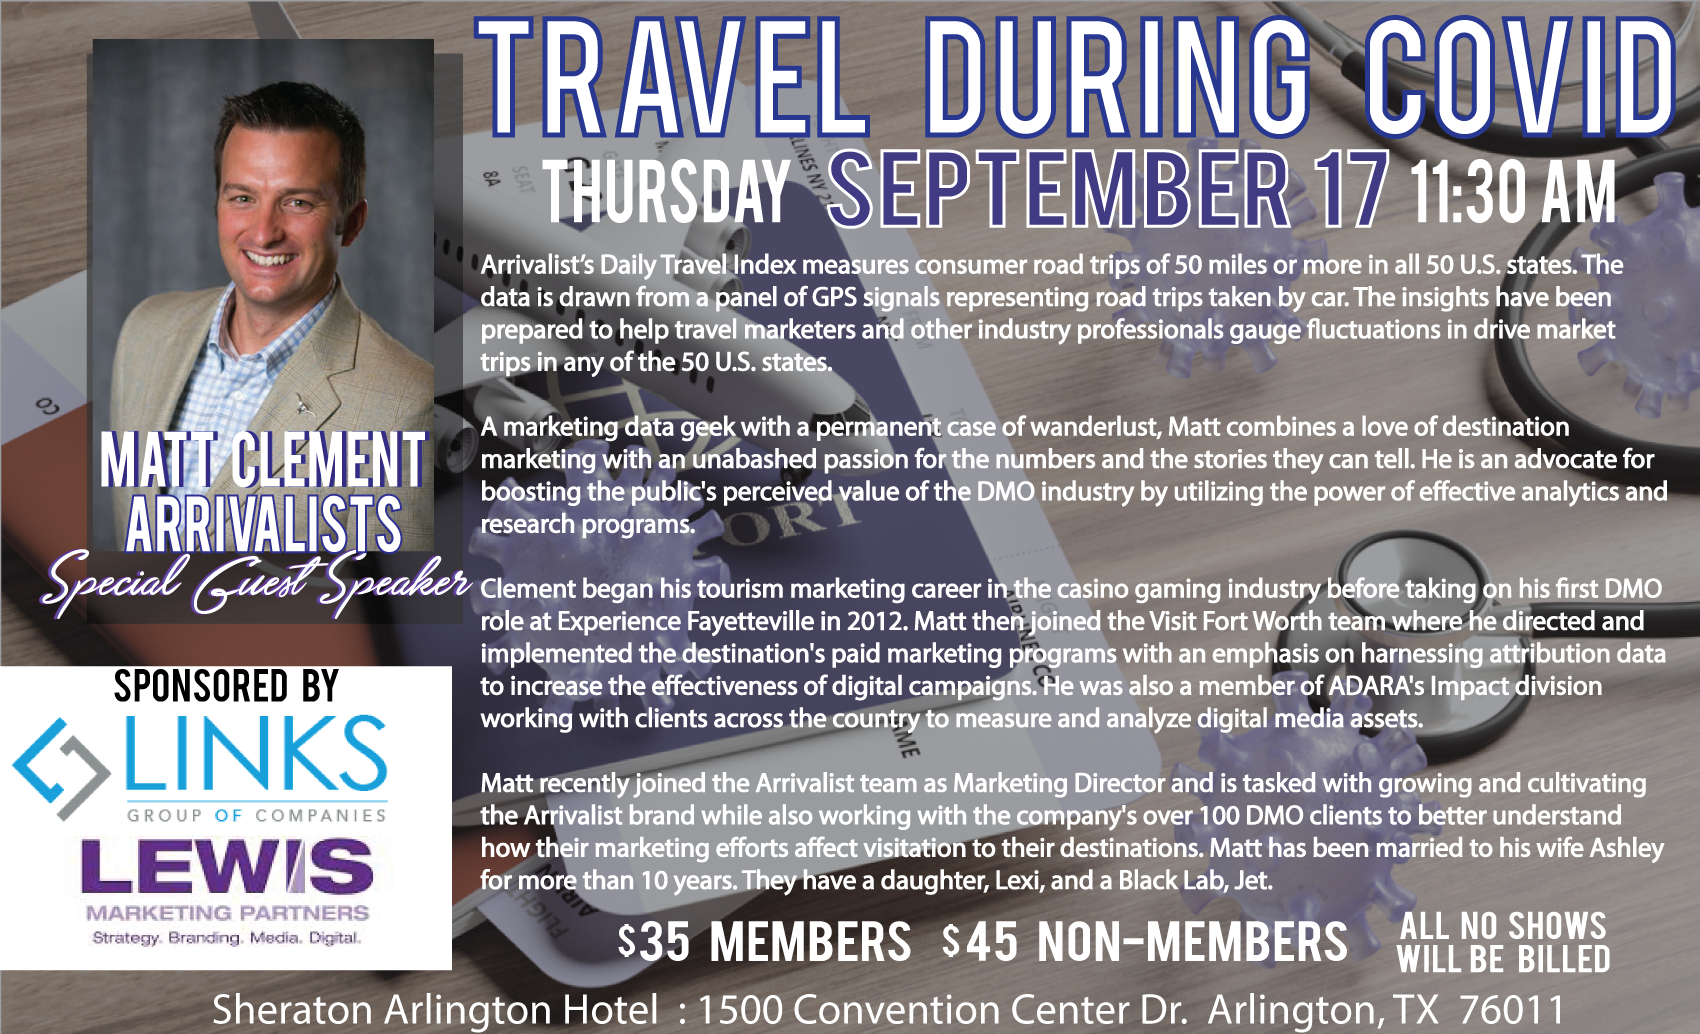 September Meeting & Luncheon Travel During COVID-19 with Arrivalist